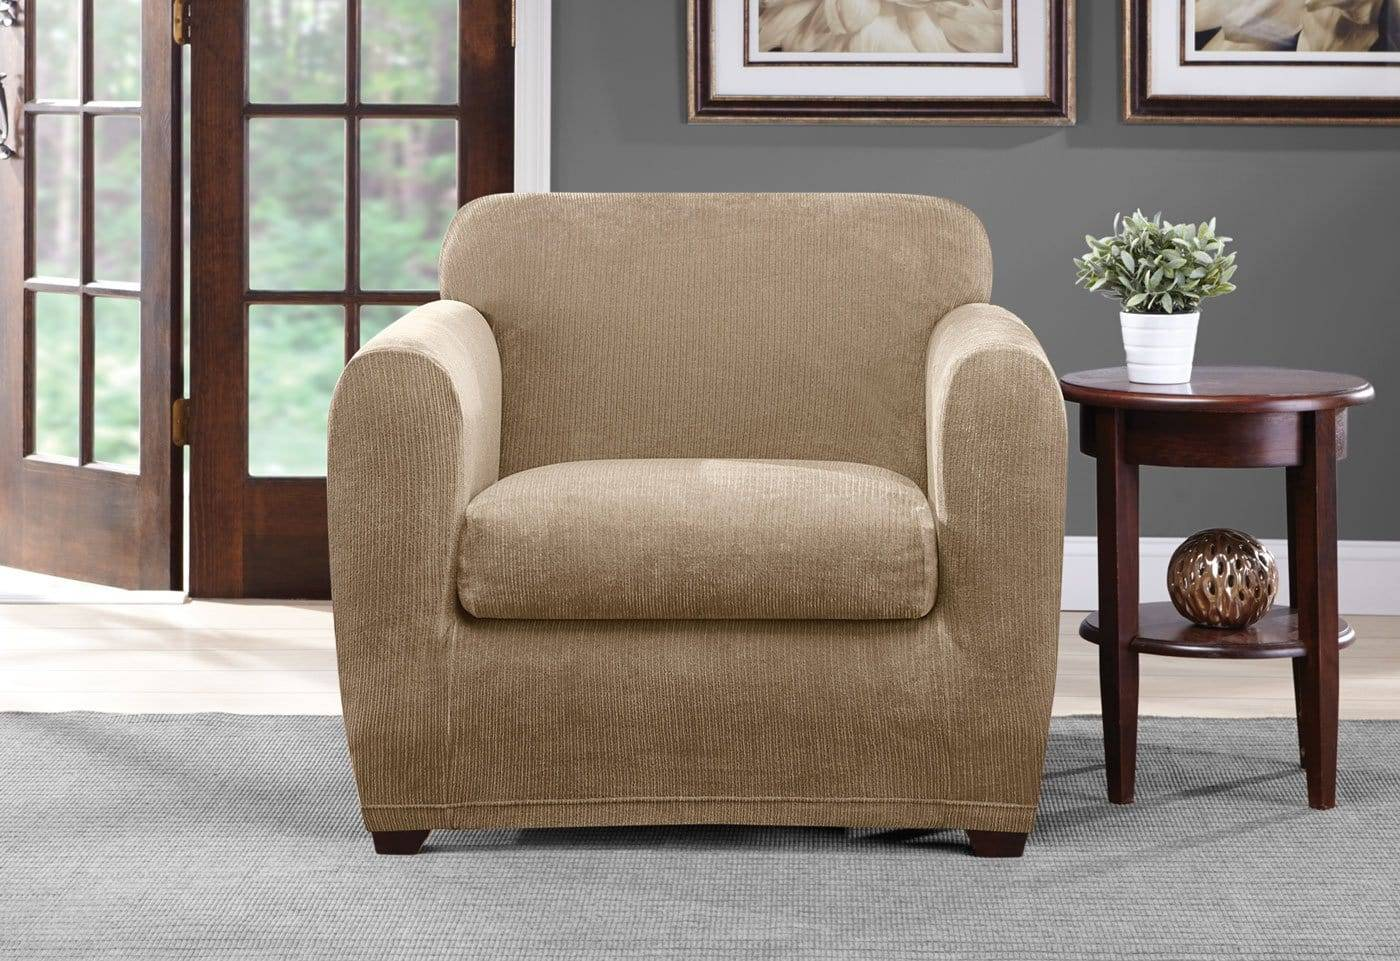 Ultimate Stretch Chenille Two Piece Chair Slipcover - Chair / Box Cushion / Tan